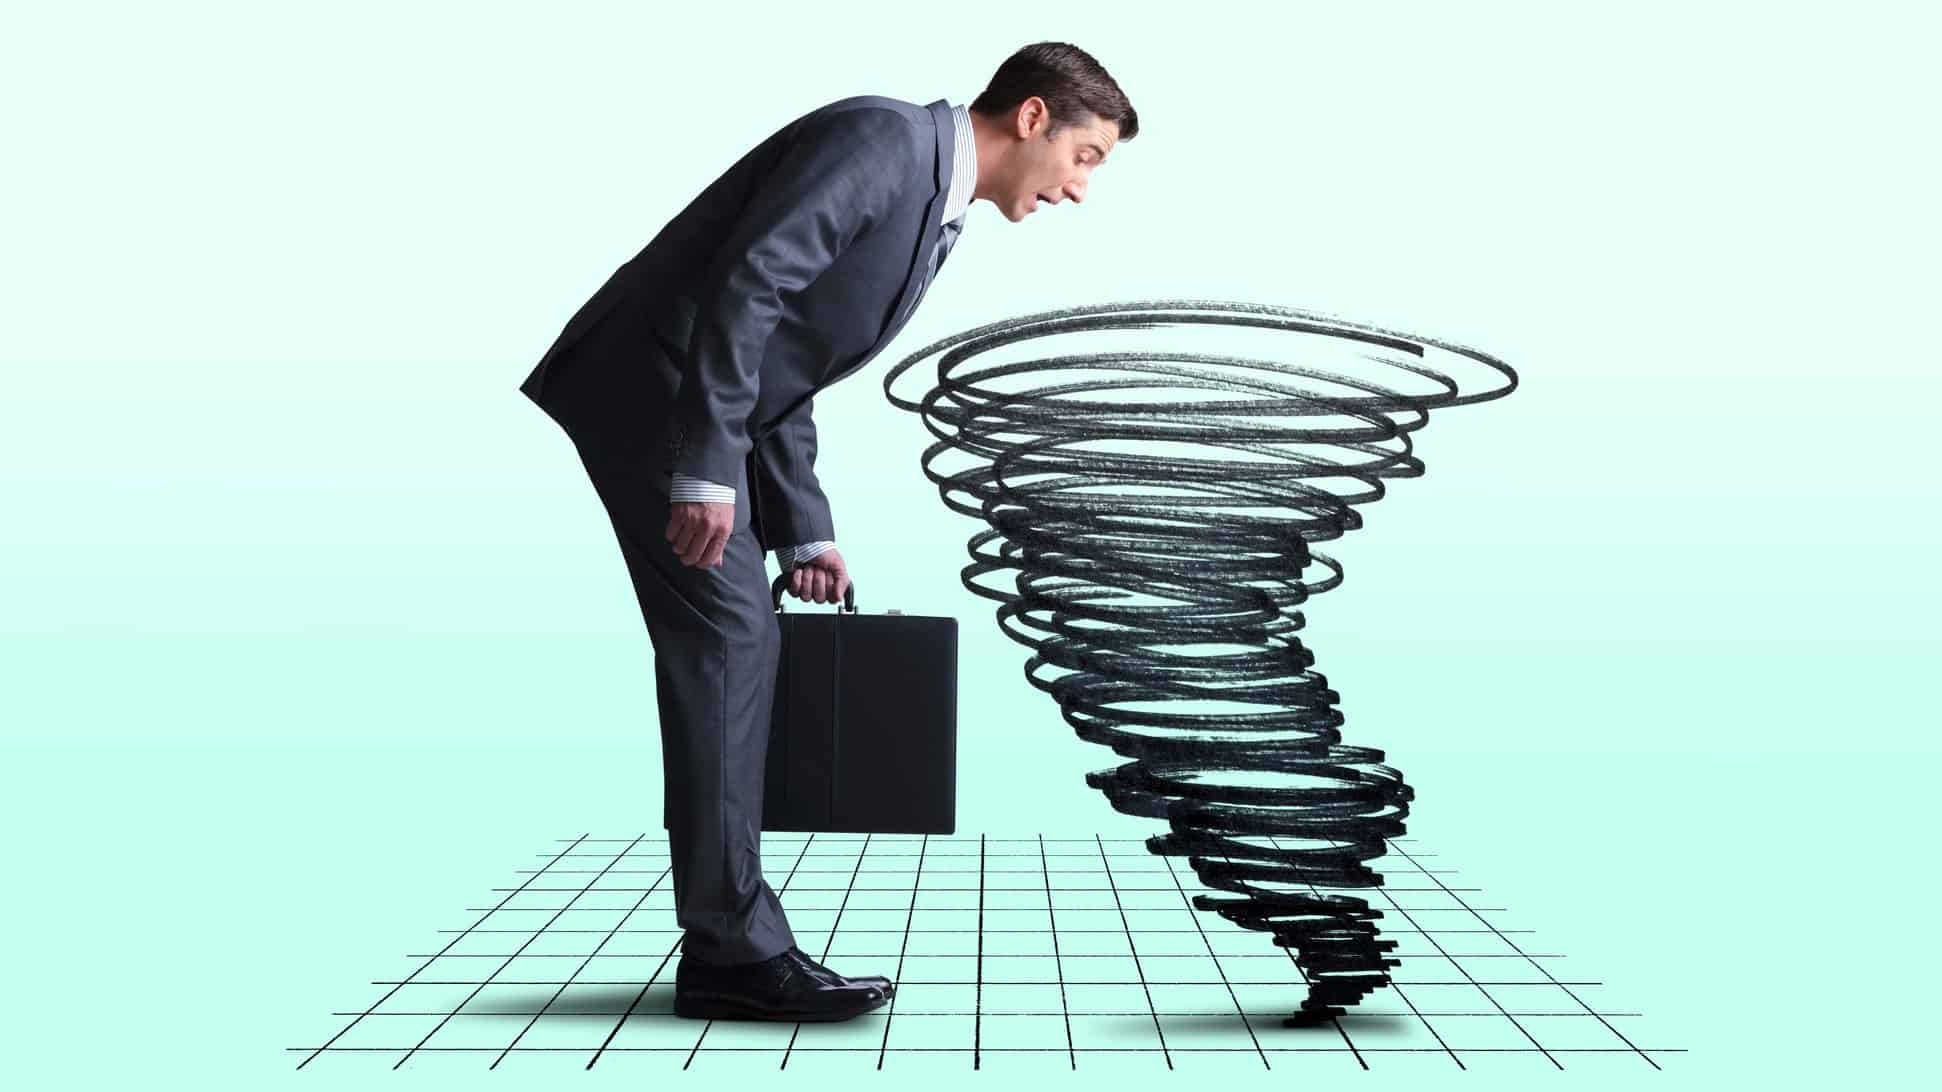 a businessman looks into a graph on the floor as a tornado rises, indicating share market chaos